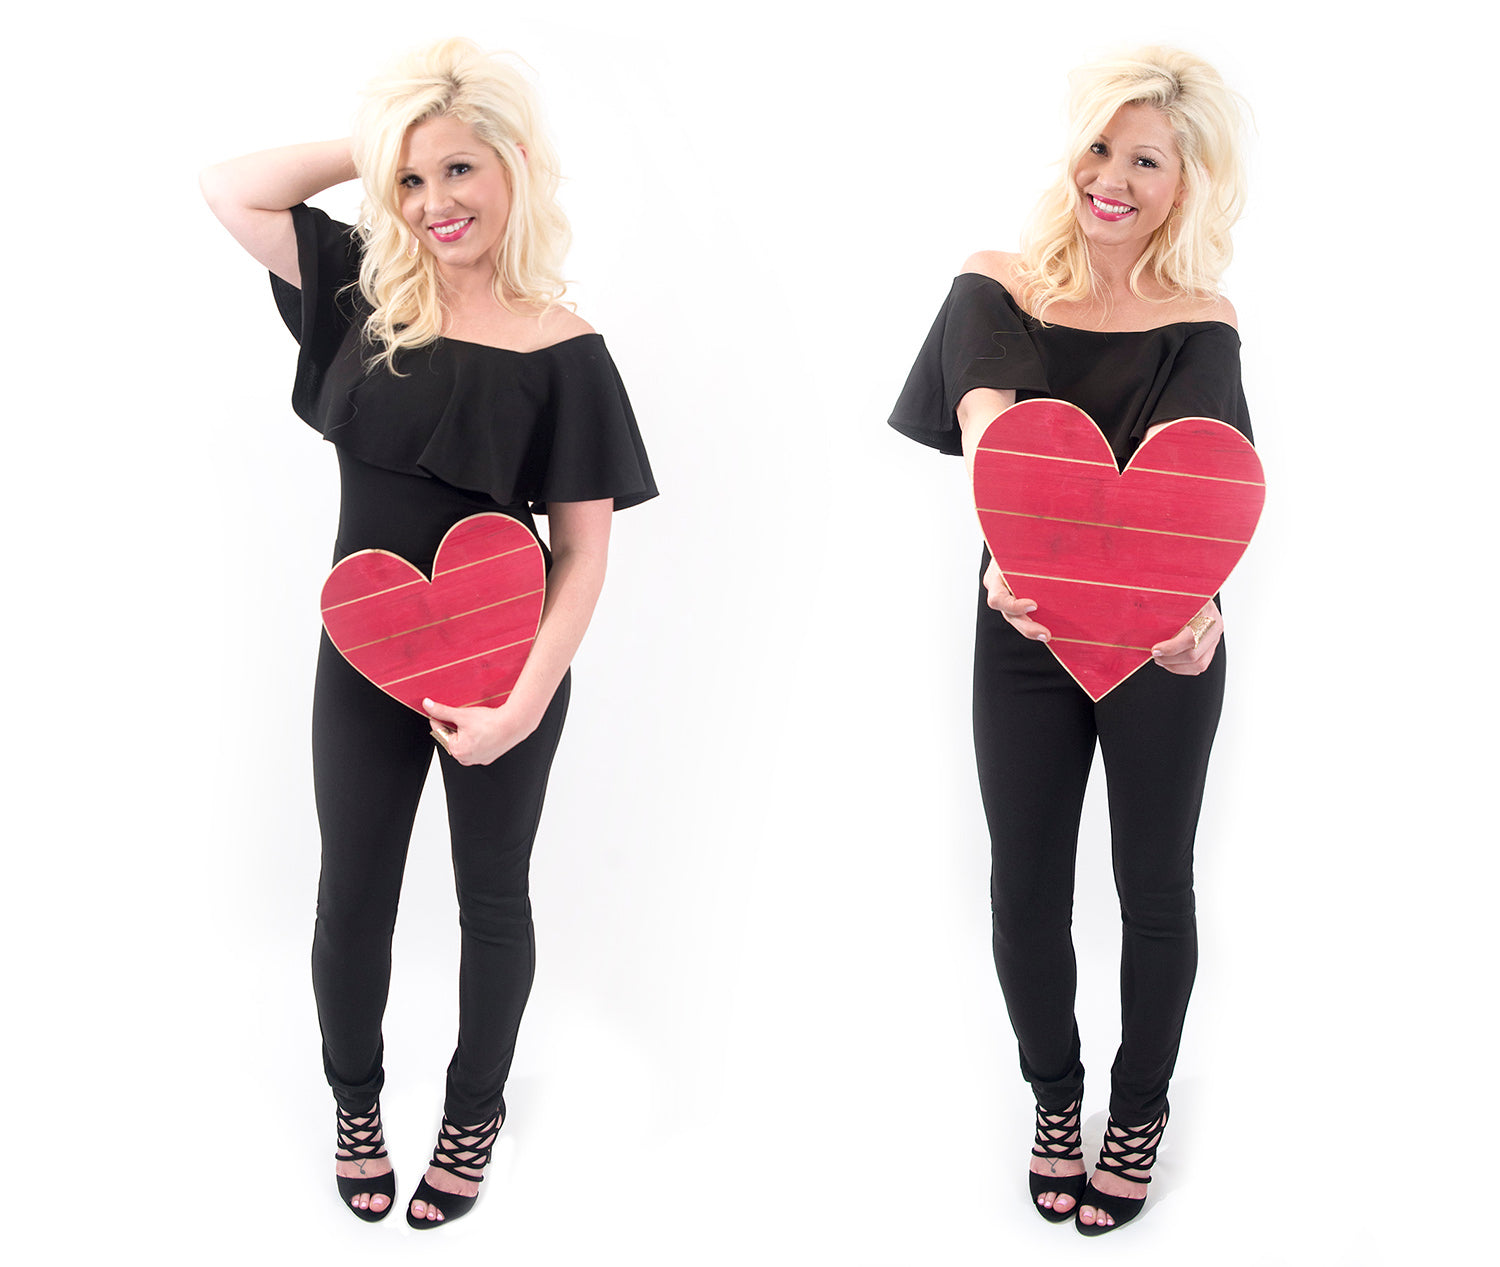 Valentine's Day Outfit Ideas at Eccentrics Boutique